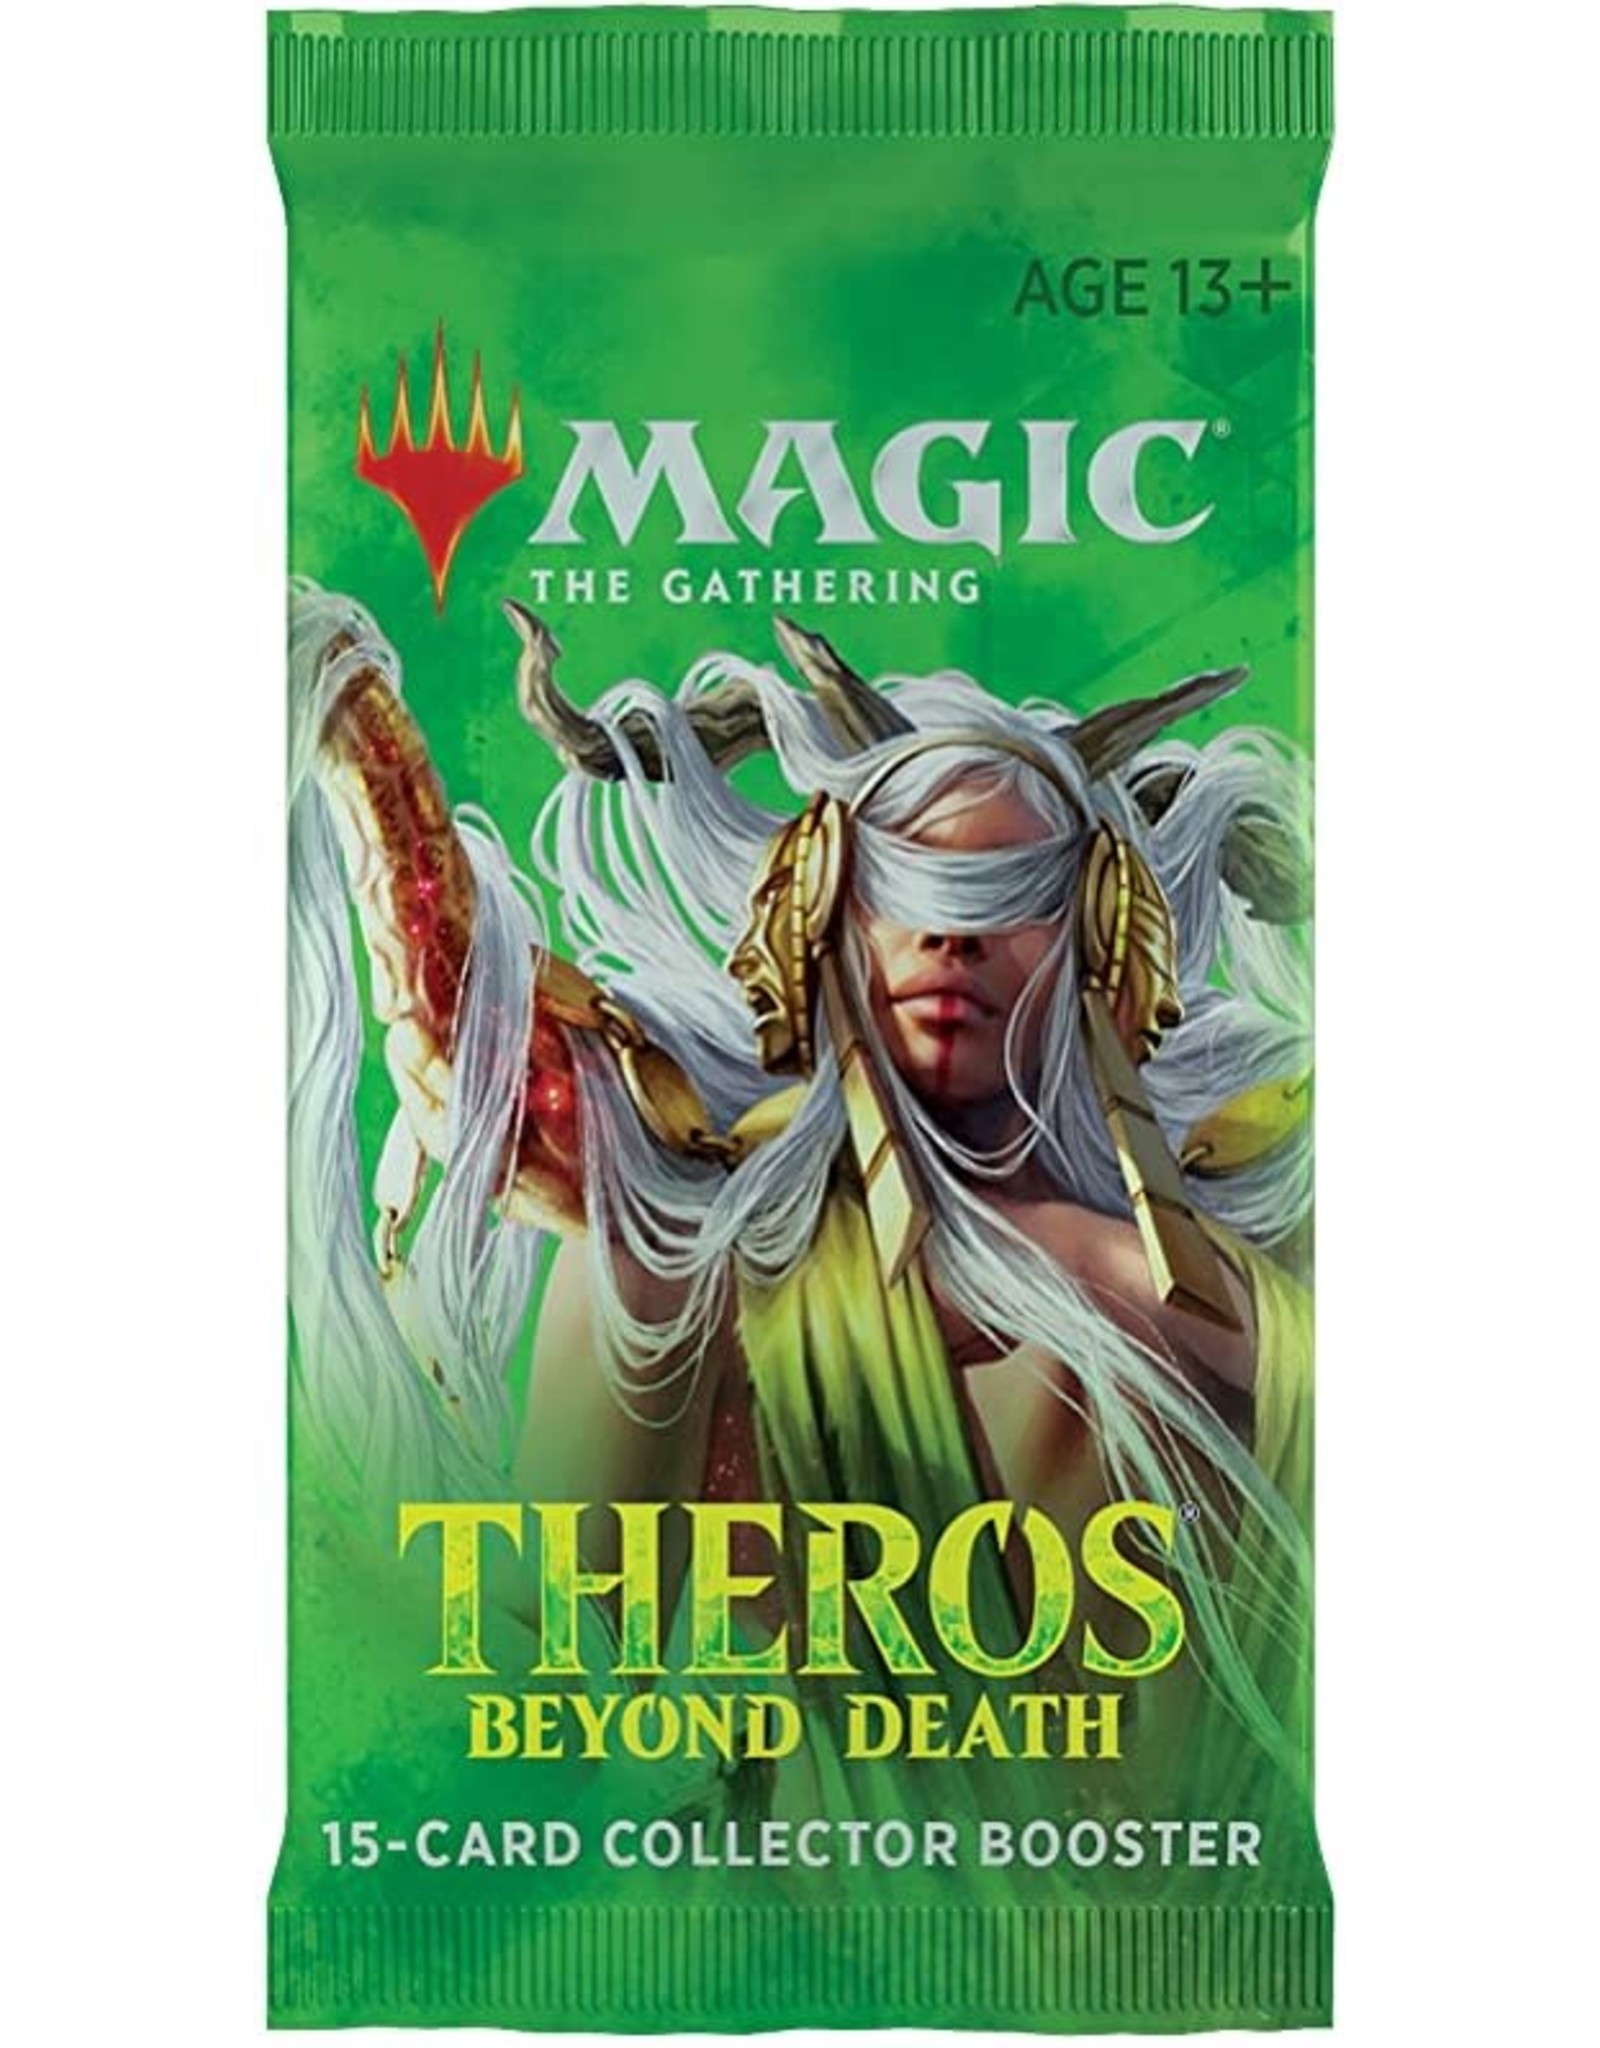 Magic: The Gathering Magic: The Gathering - Theros Beyond Death Collector Booster Pack